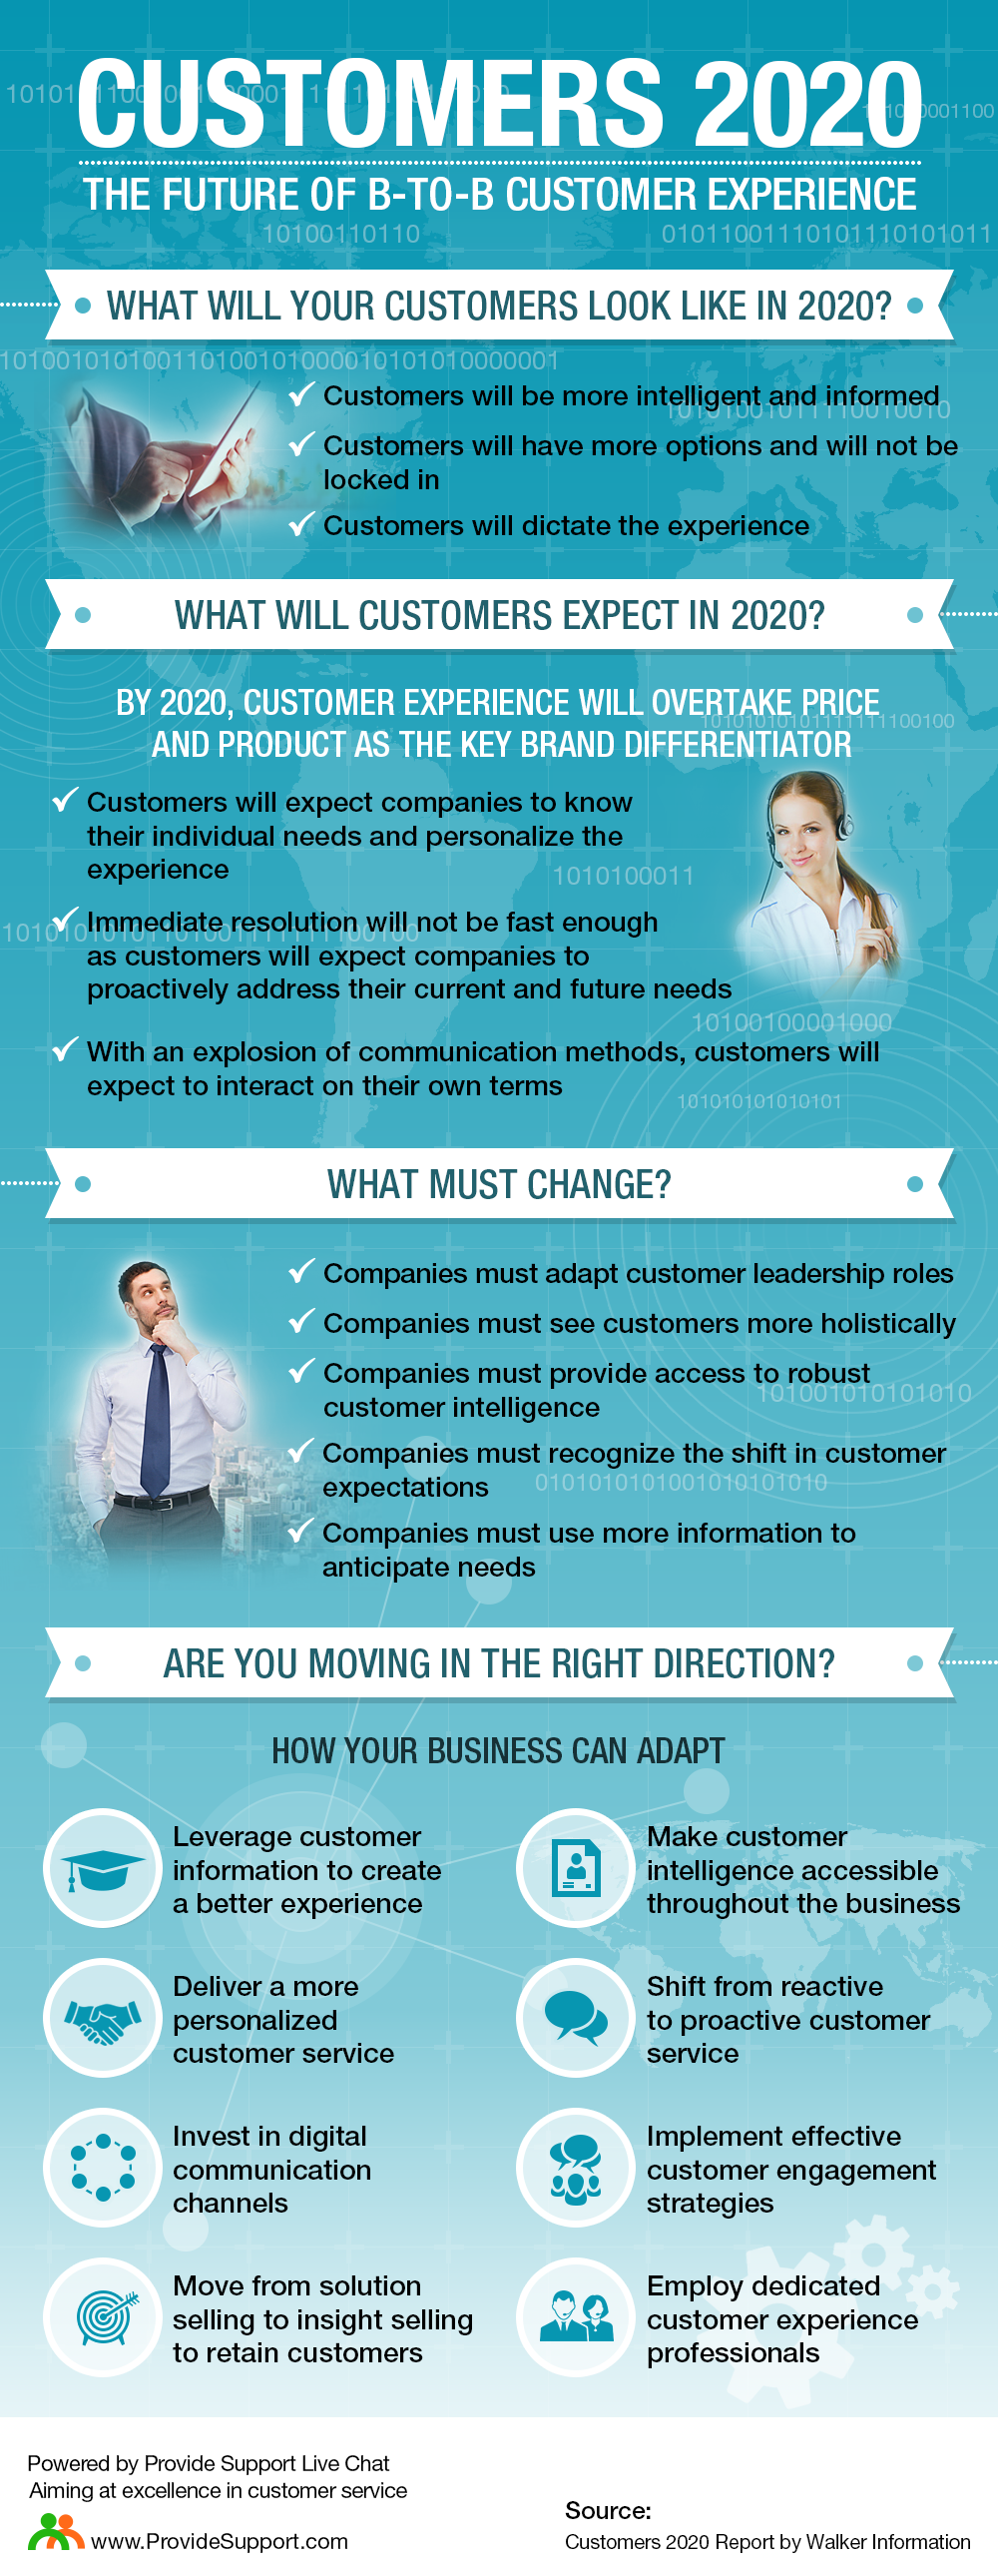 Customers 2020: The Future Of B-To-B Customer Experience